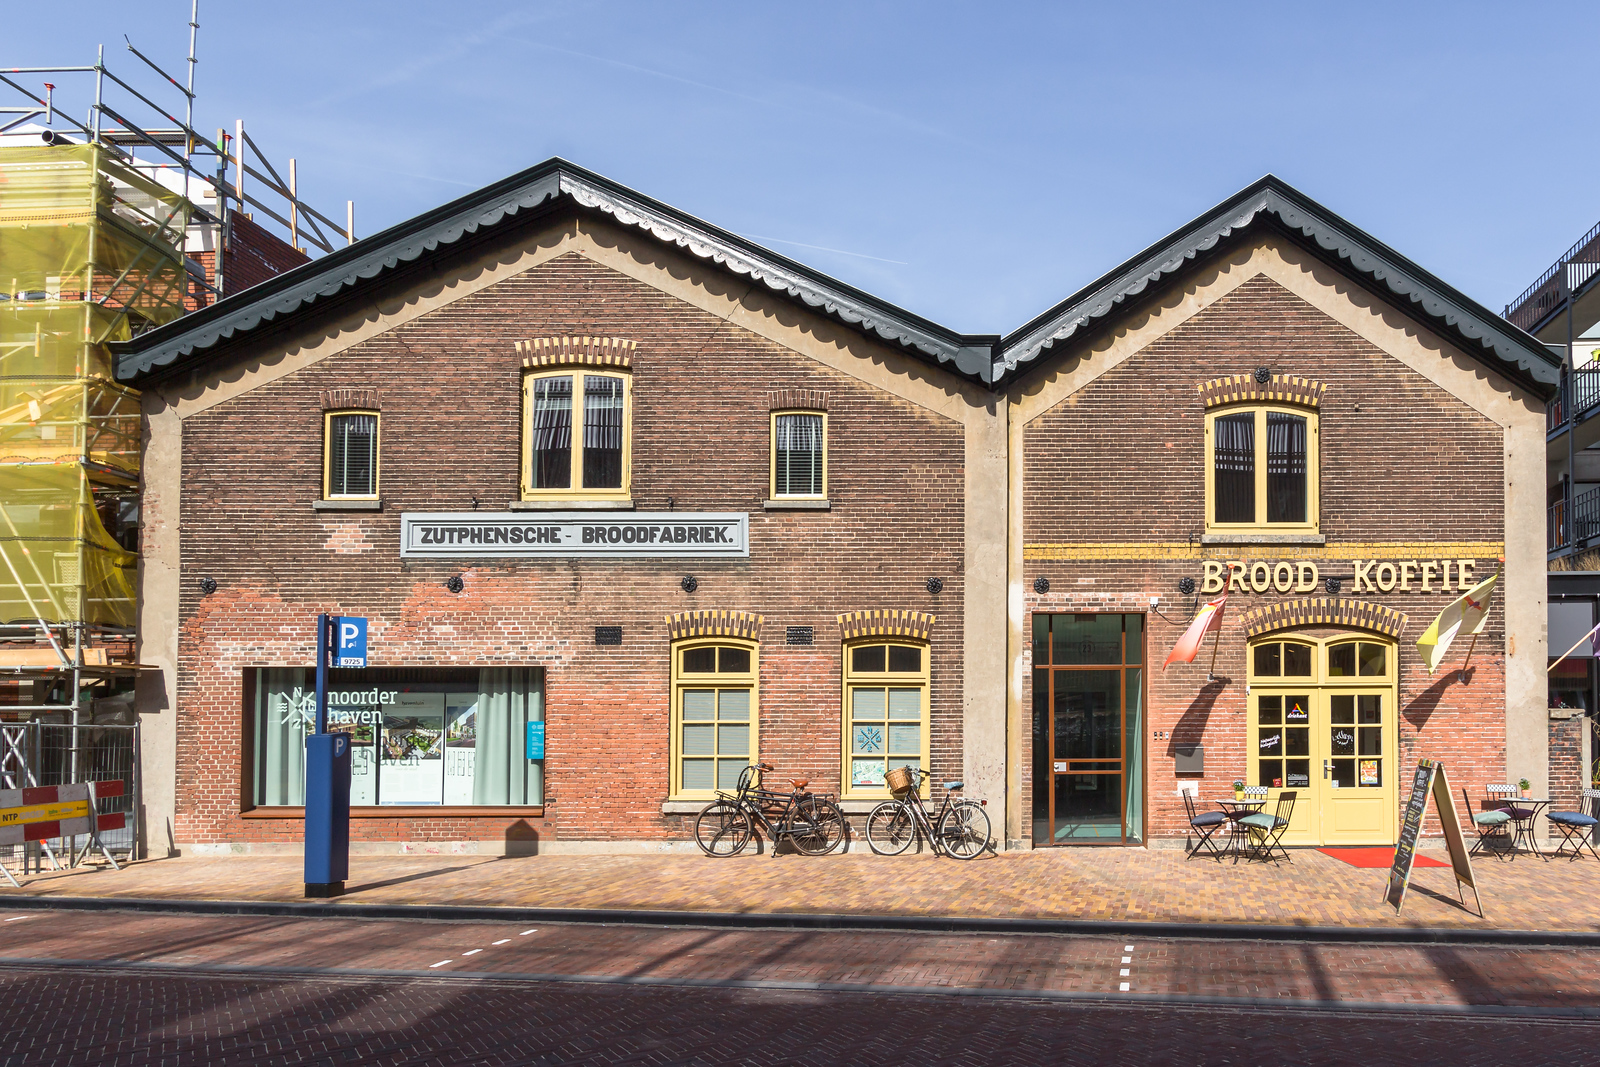 Renovatie van De Broodfabriek